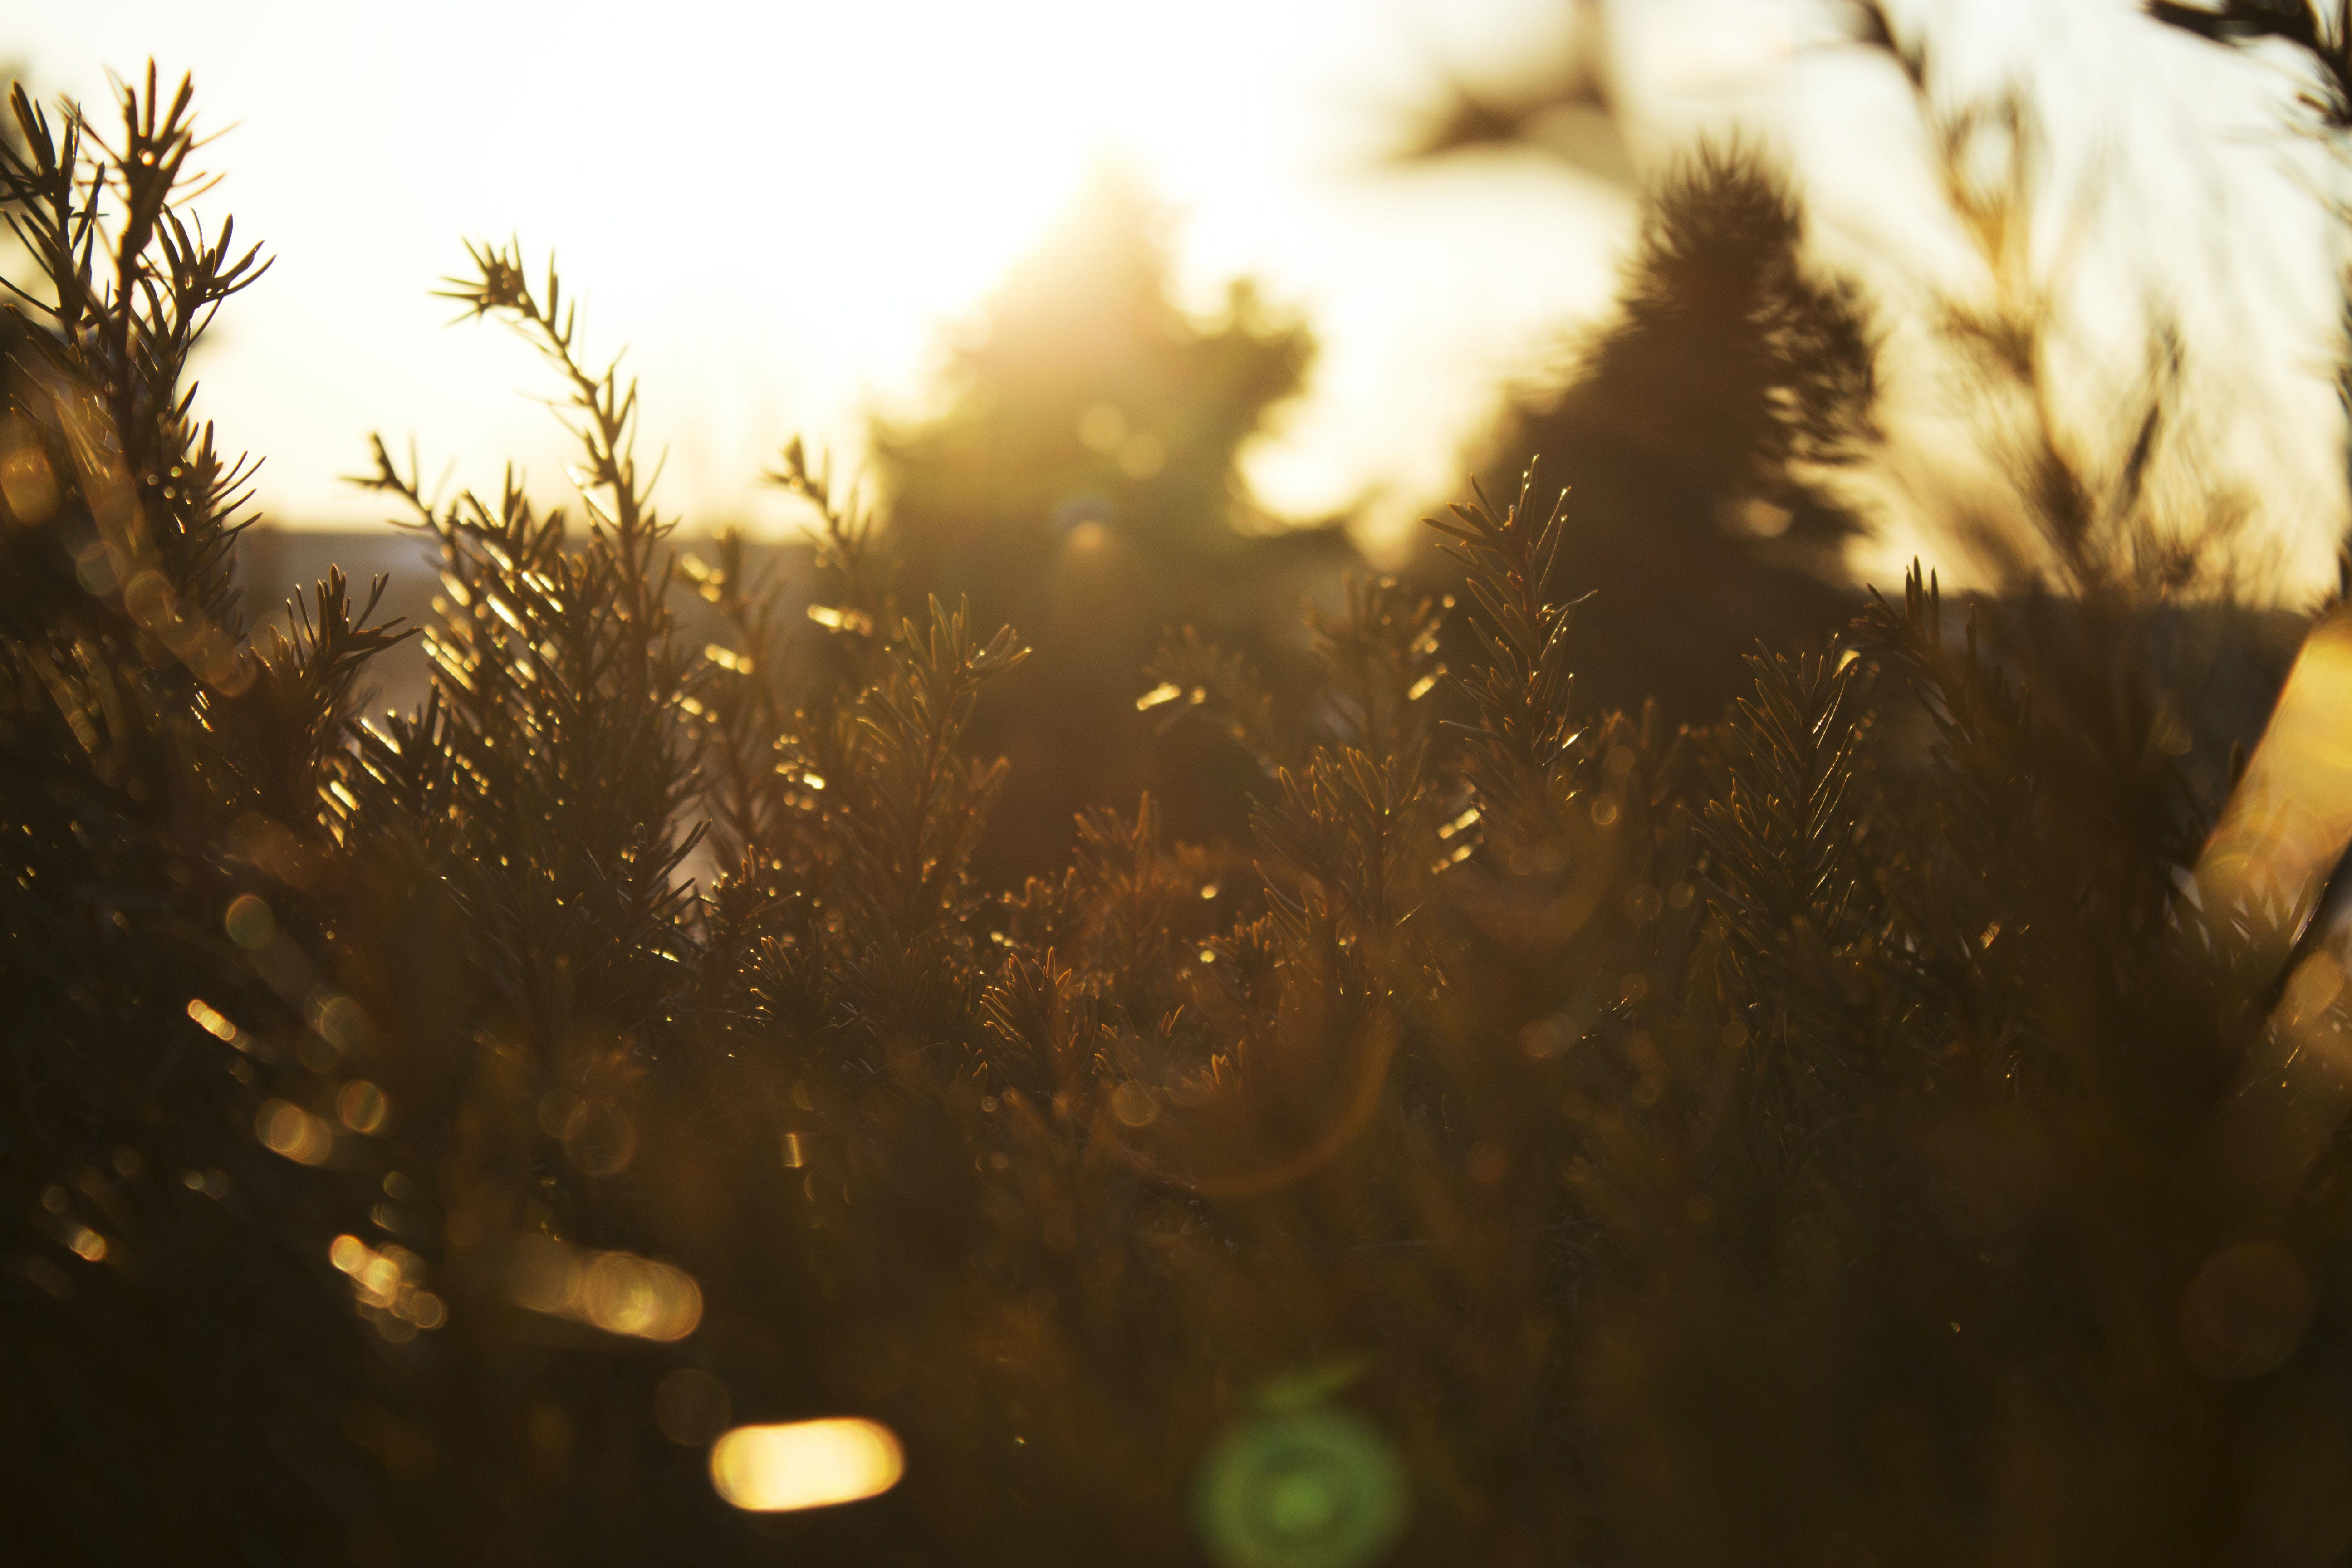 Silhouette of Plants at Sunset